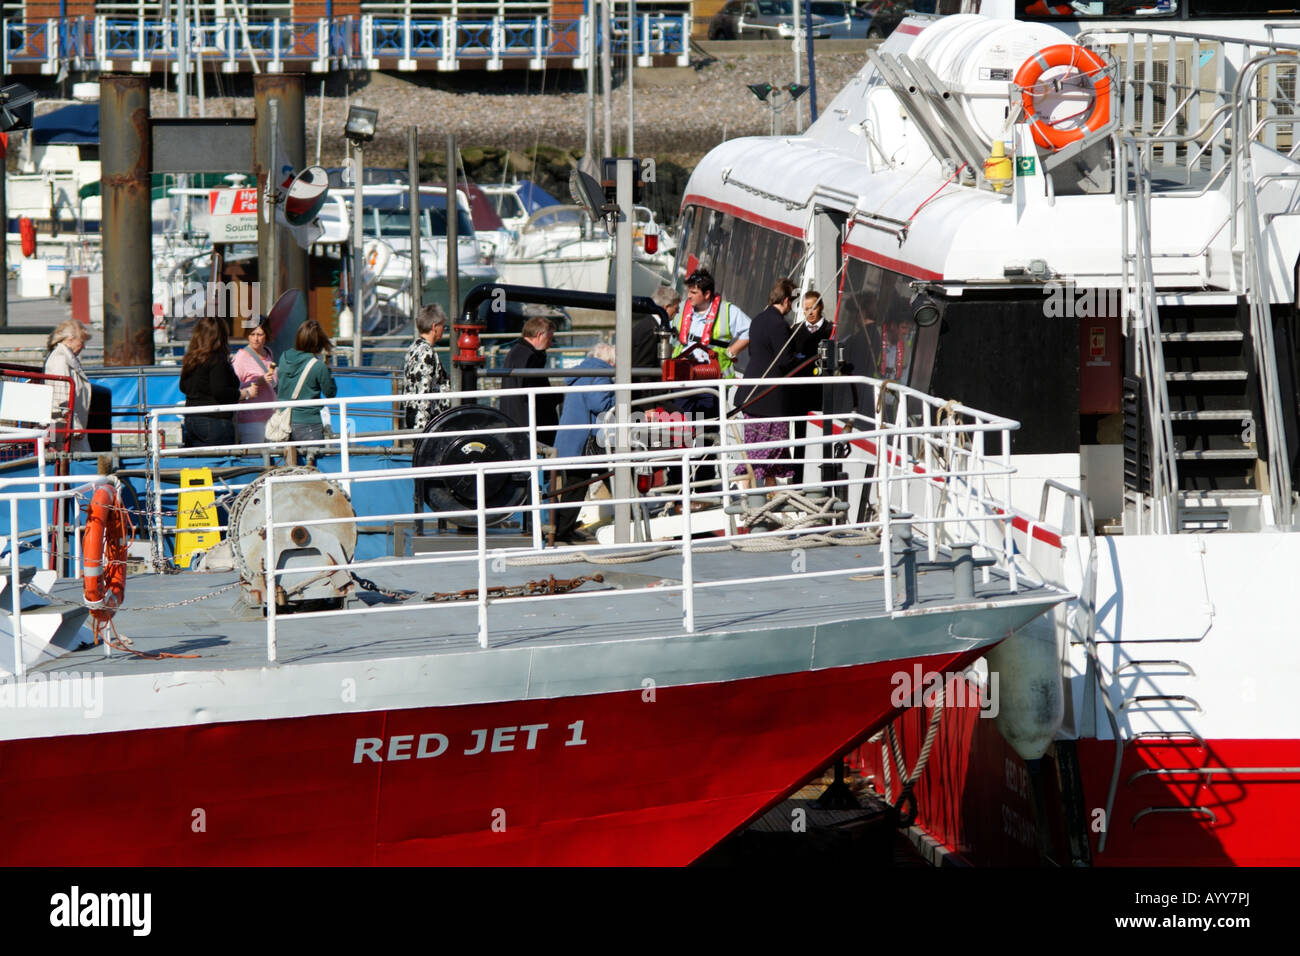 red funnel ferry company red jet hi speed service catamaran foot passengers boarding vessel fleet town quay southampton - Stock Image